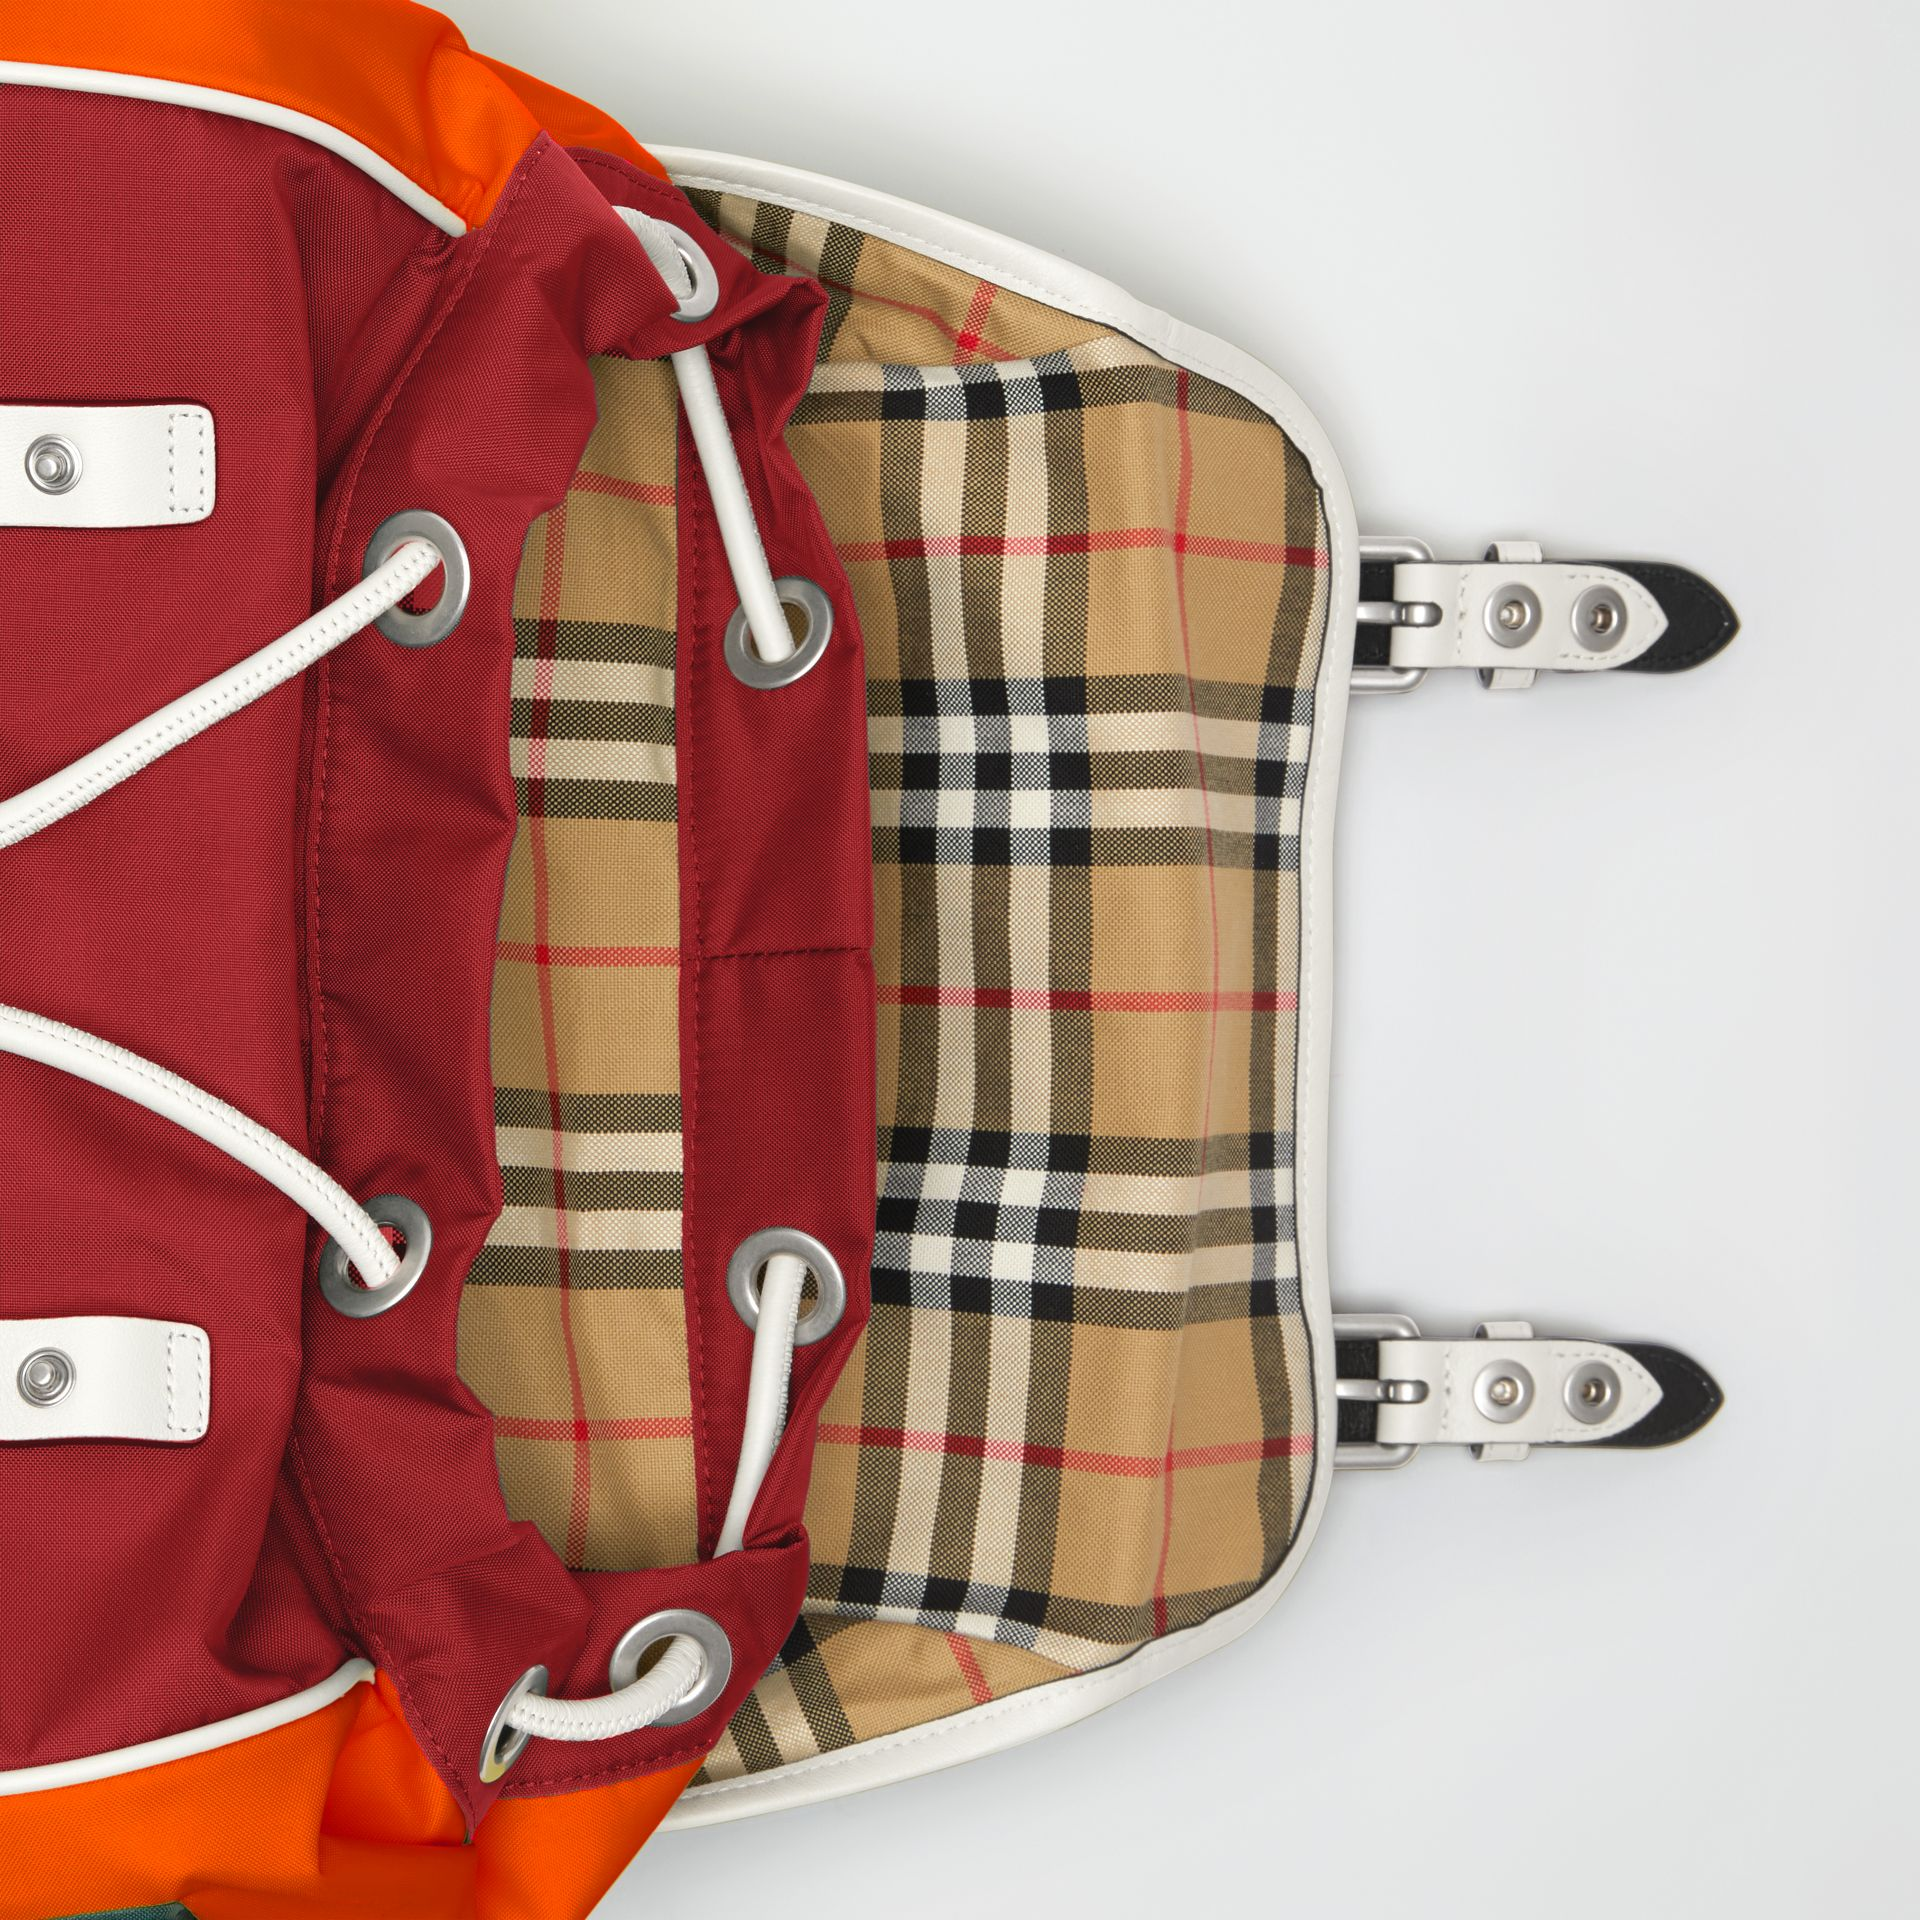 Tri-tone Nylon and Leather Backpack in Parade Red - Men | Burberry Australia - gallery image 3